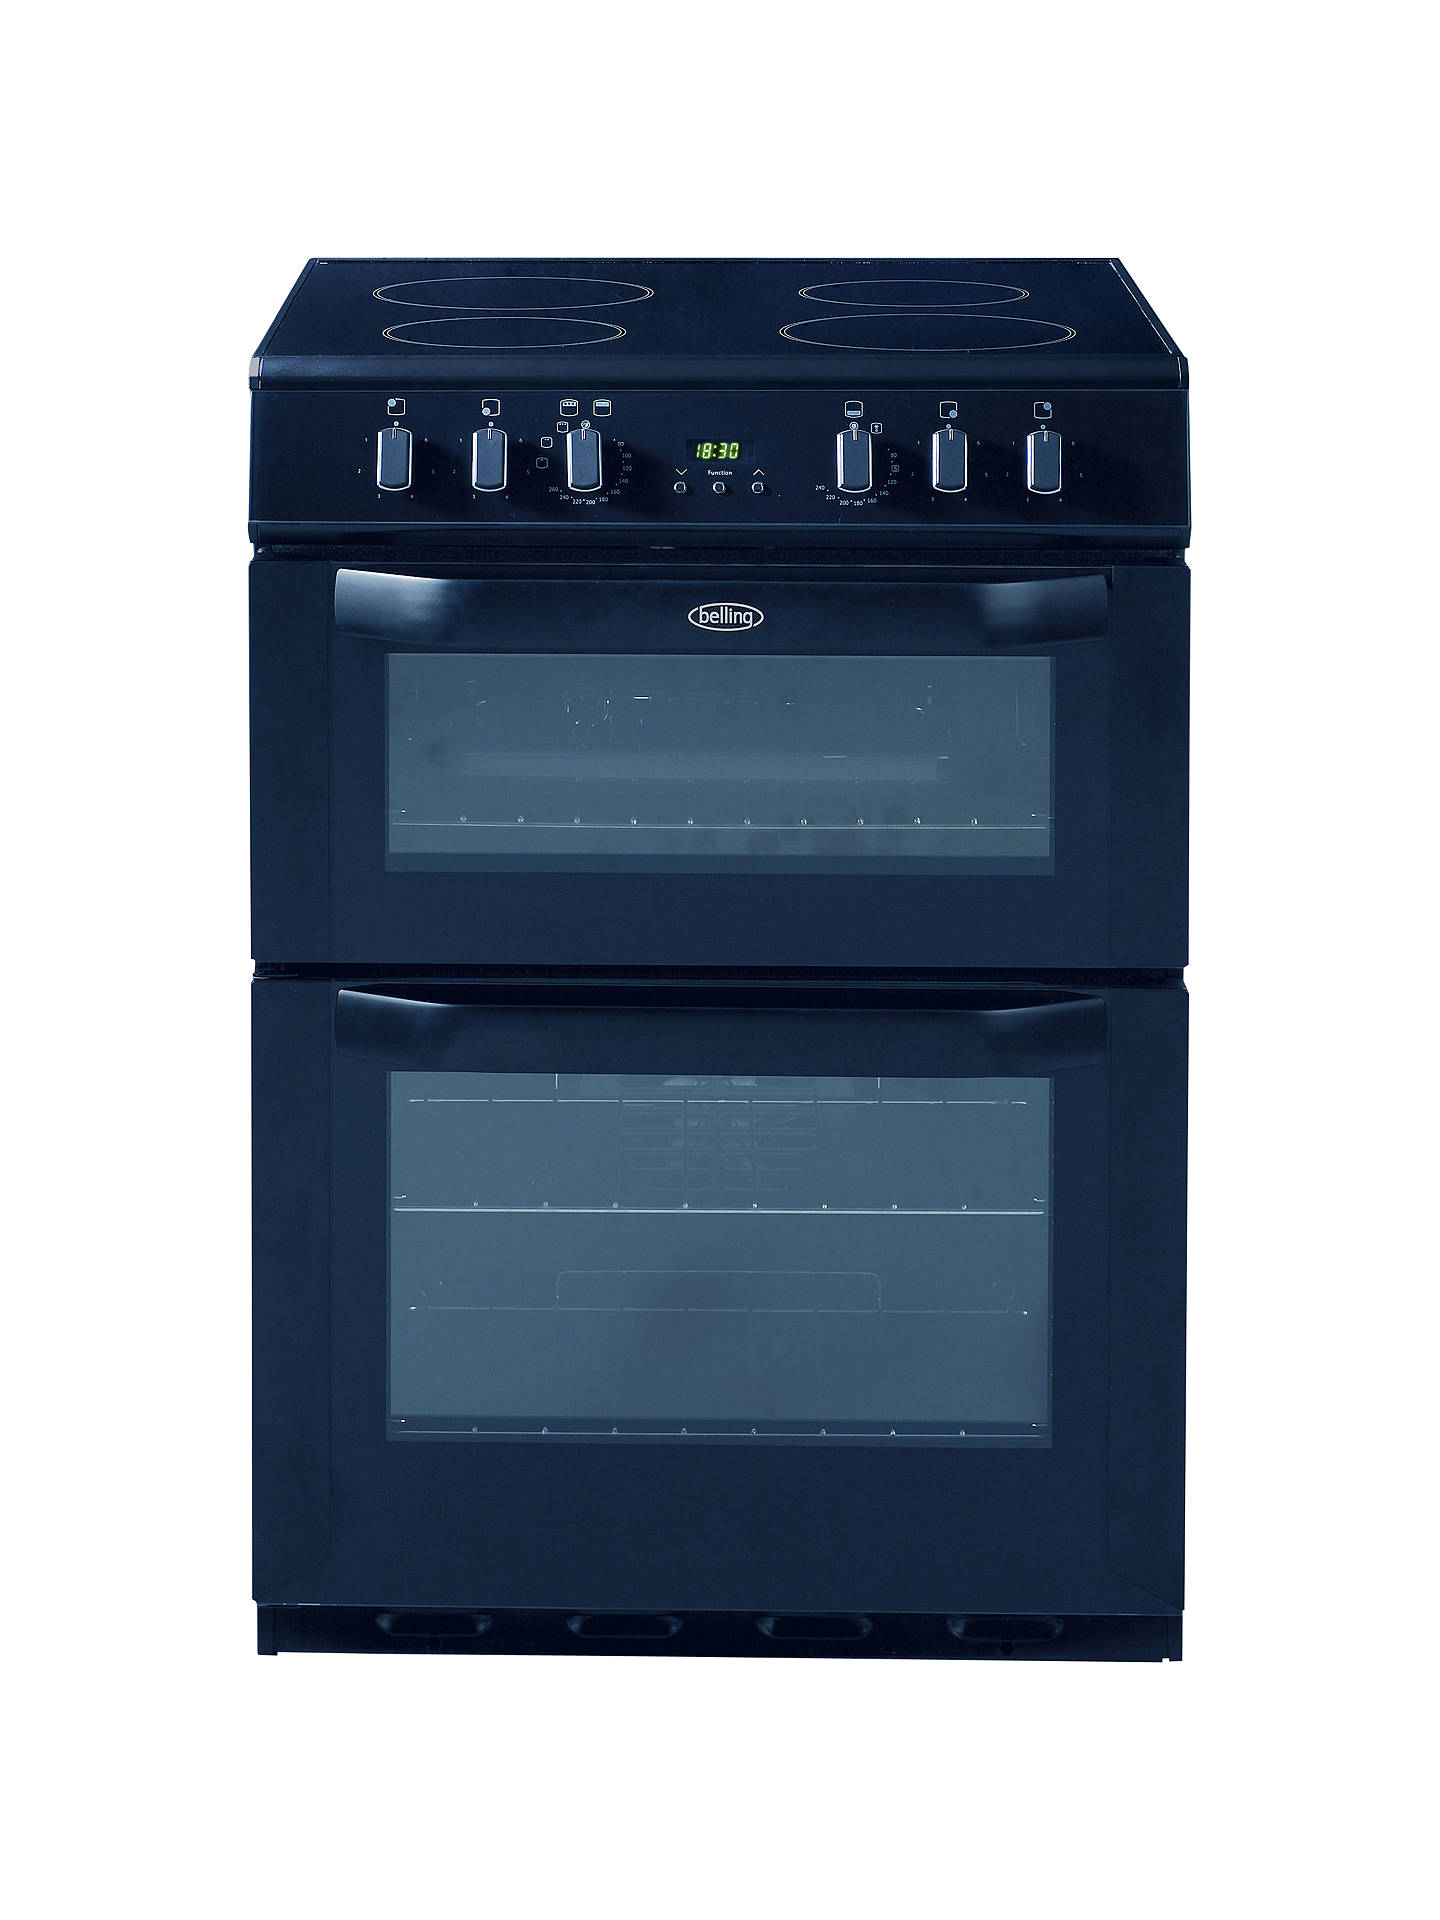 belling oven installation guide browse manual guides u2022 rh npiplus co Electric Cookers Belling Belling Cookers UK